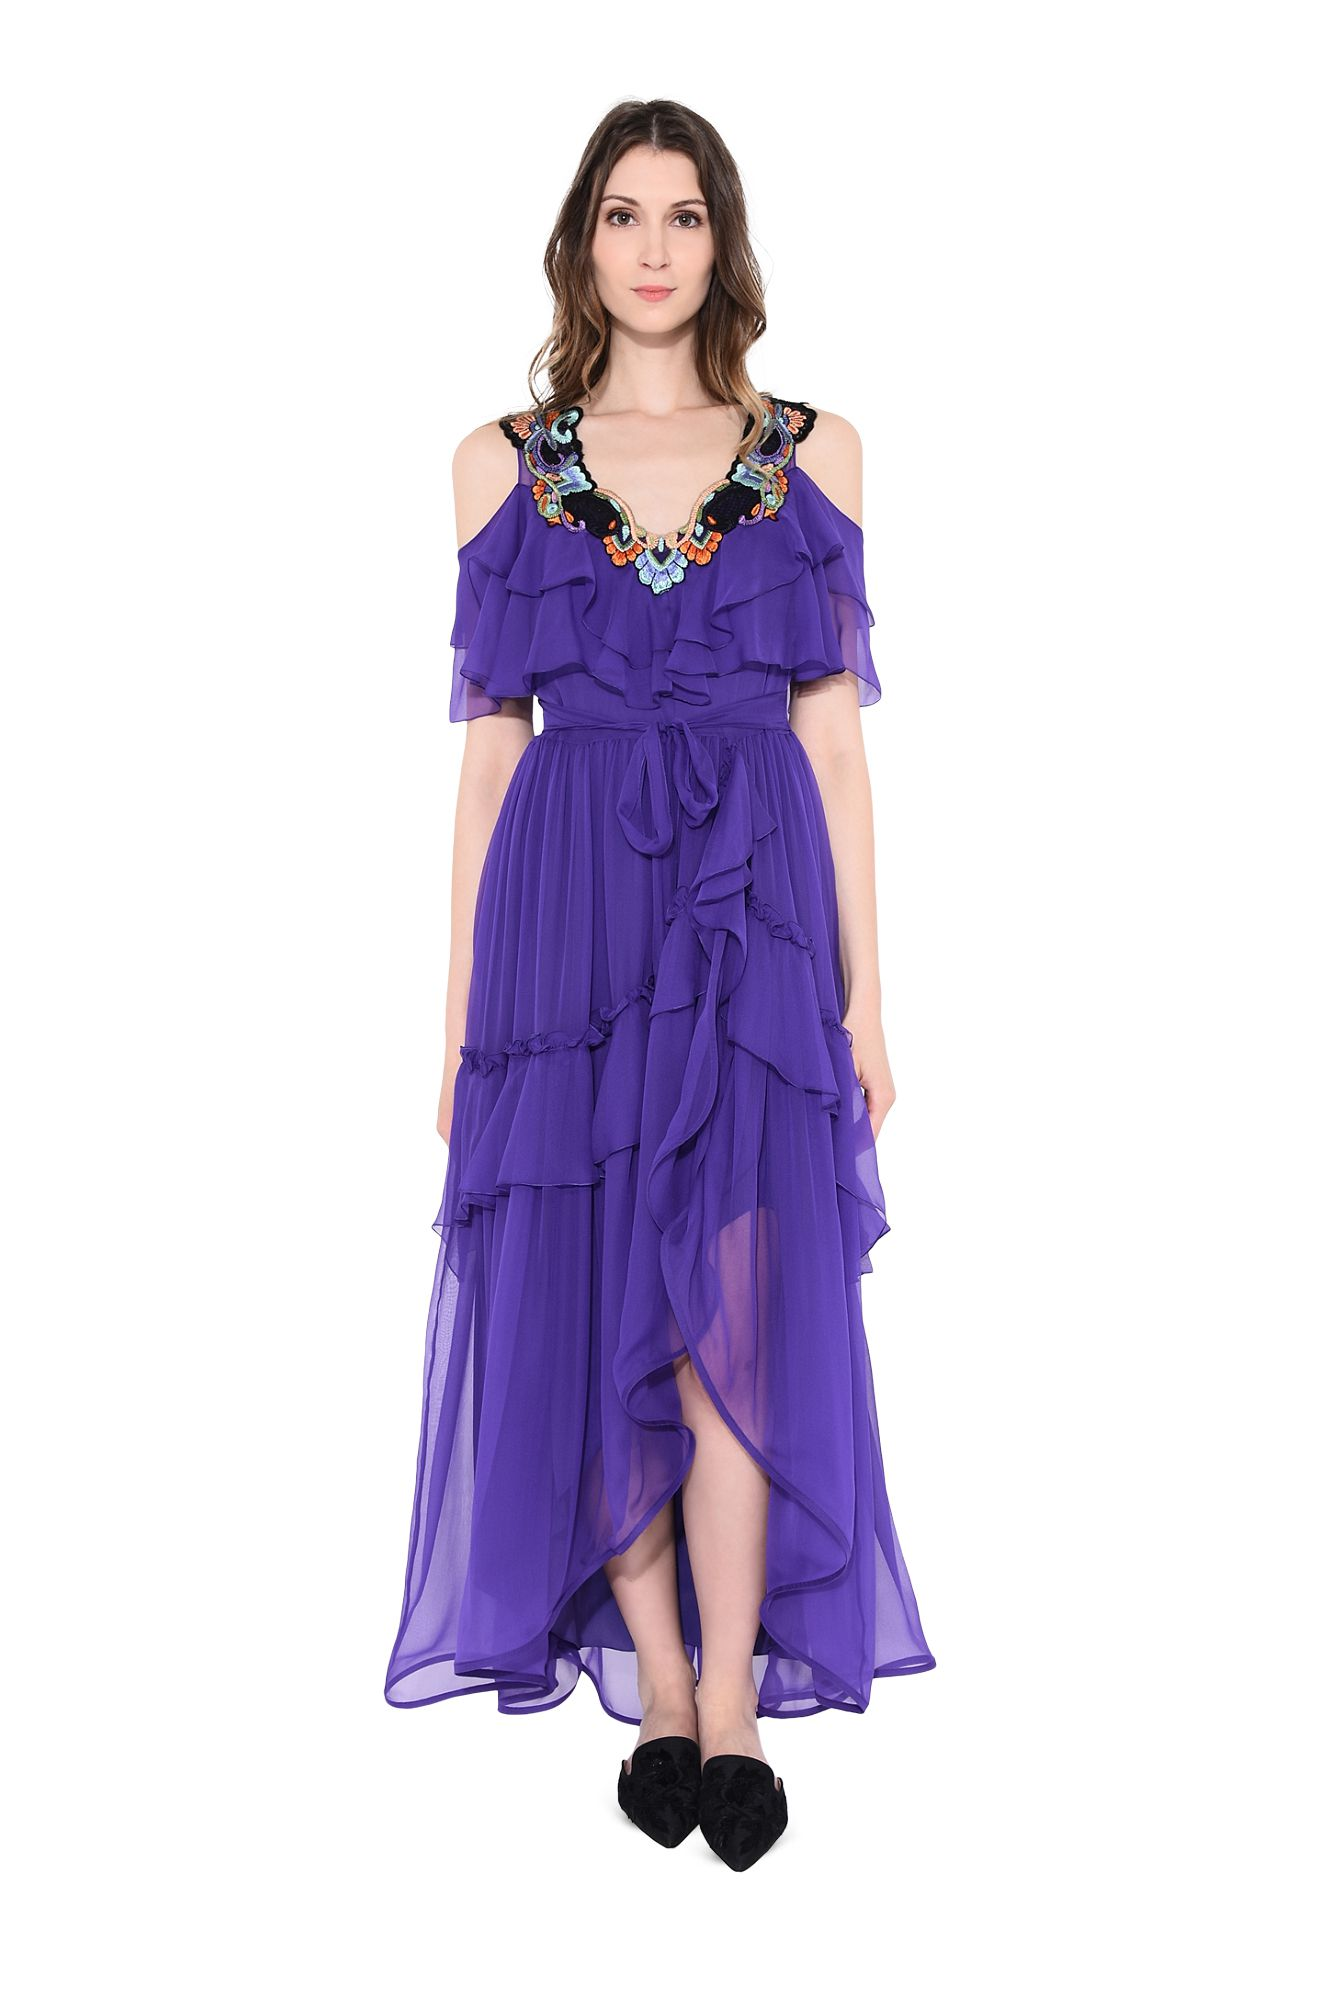 EXÒTICO PURPLE DRESS